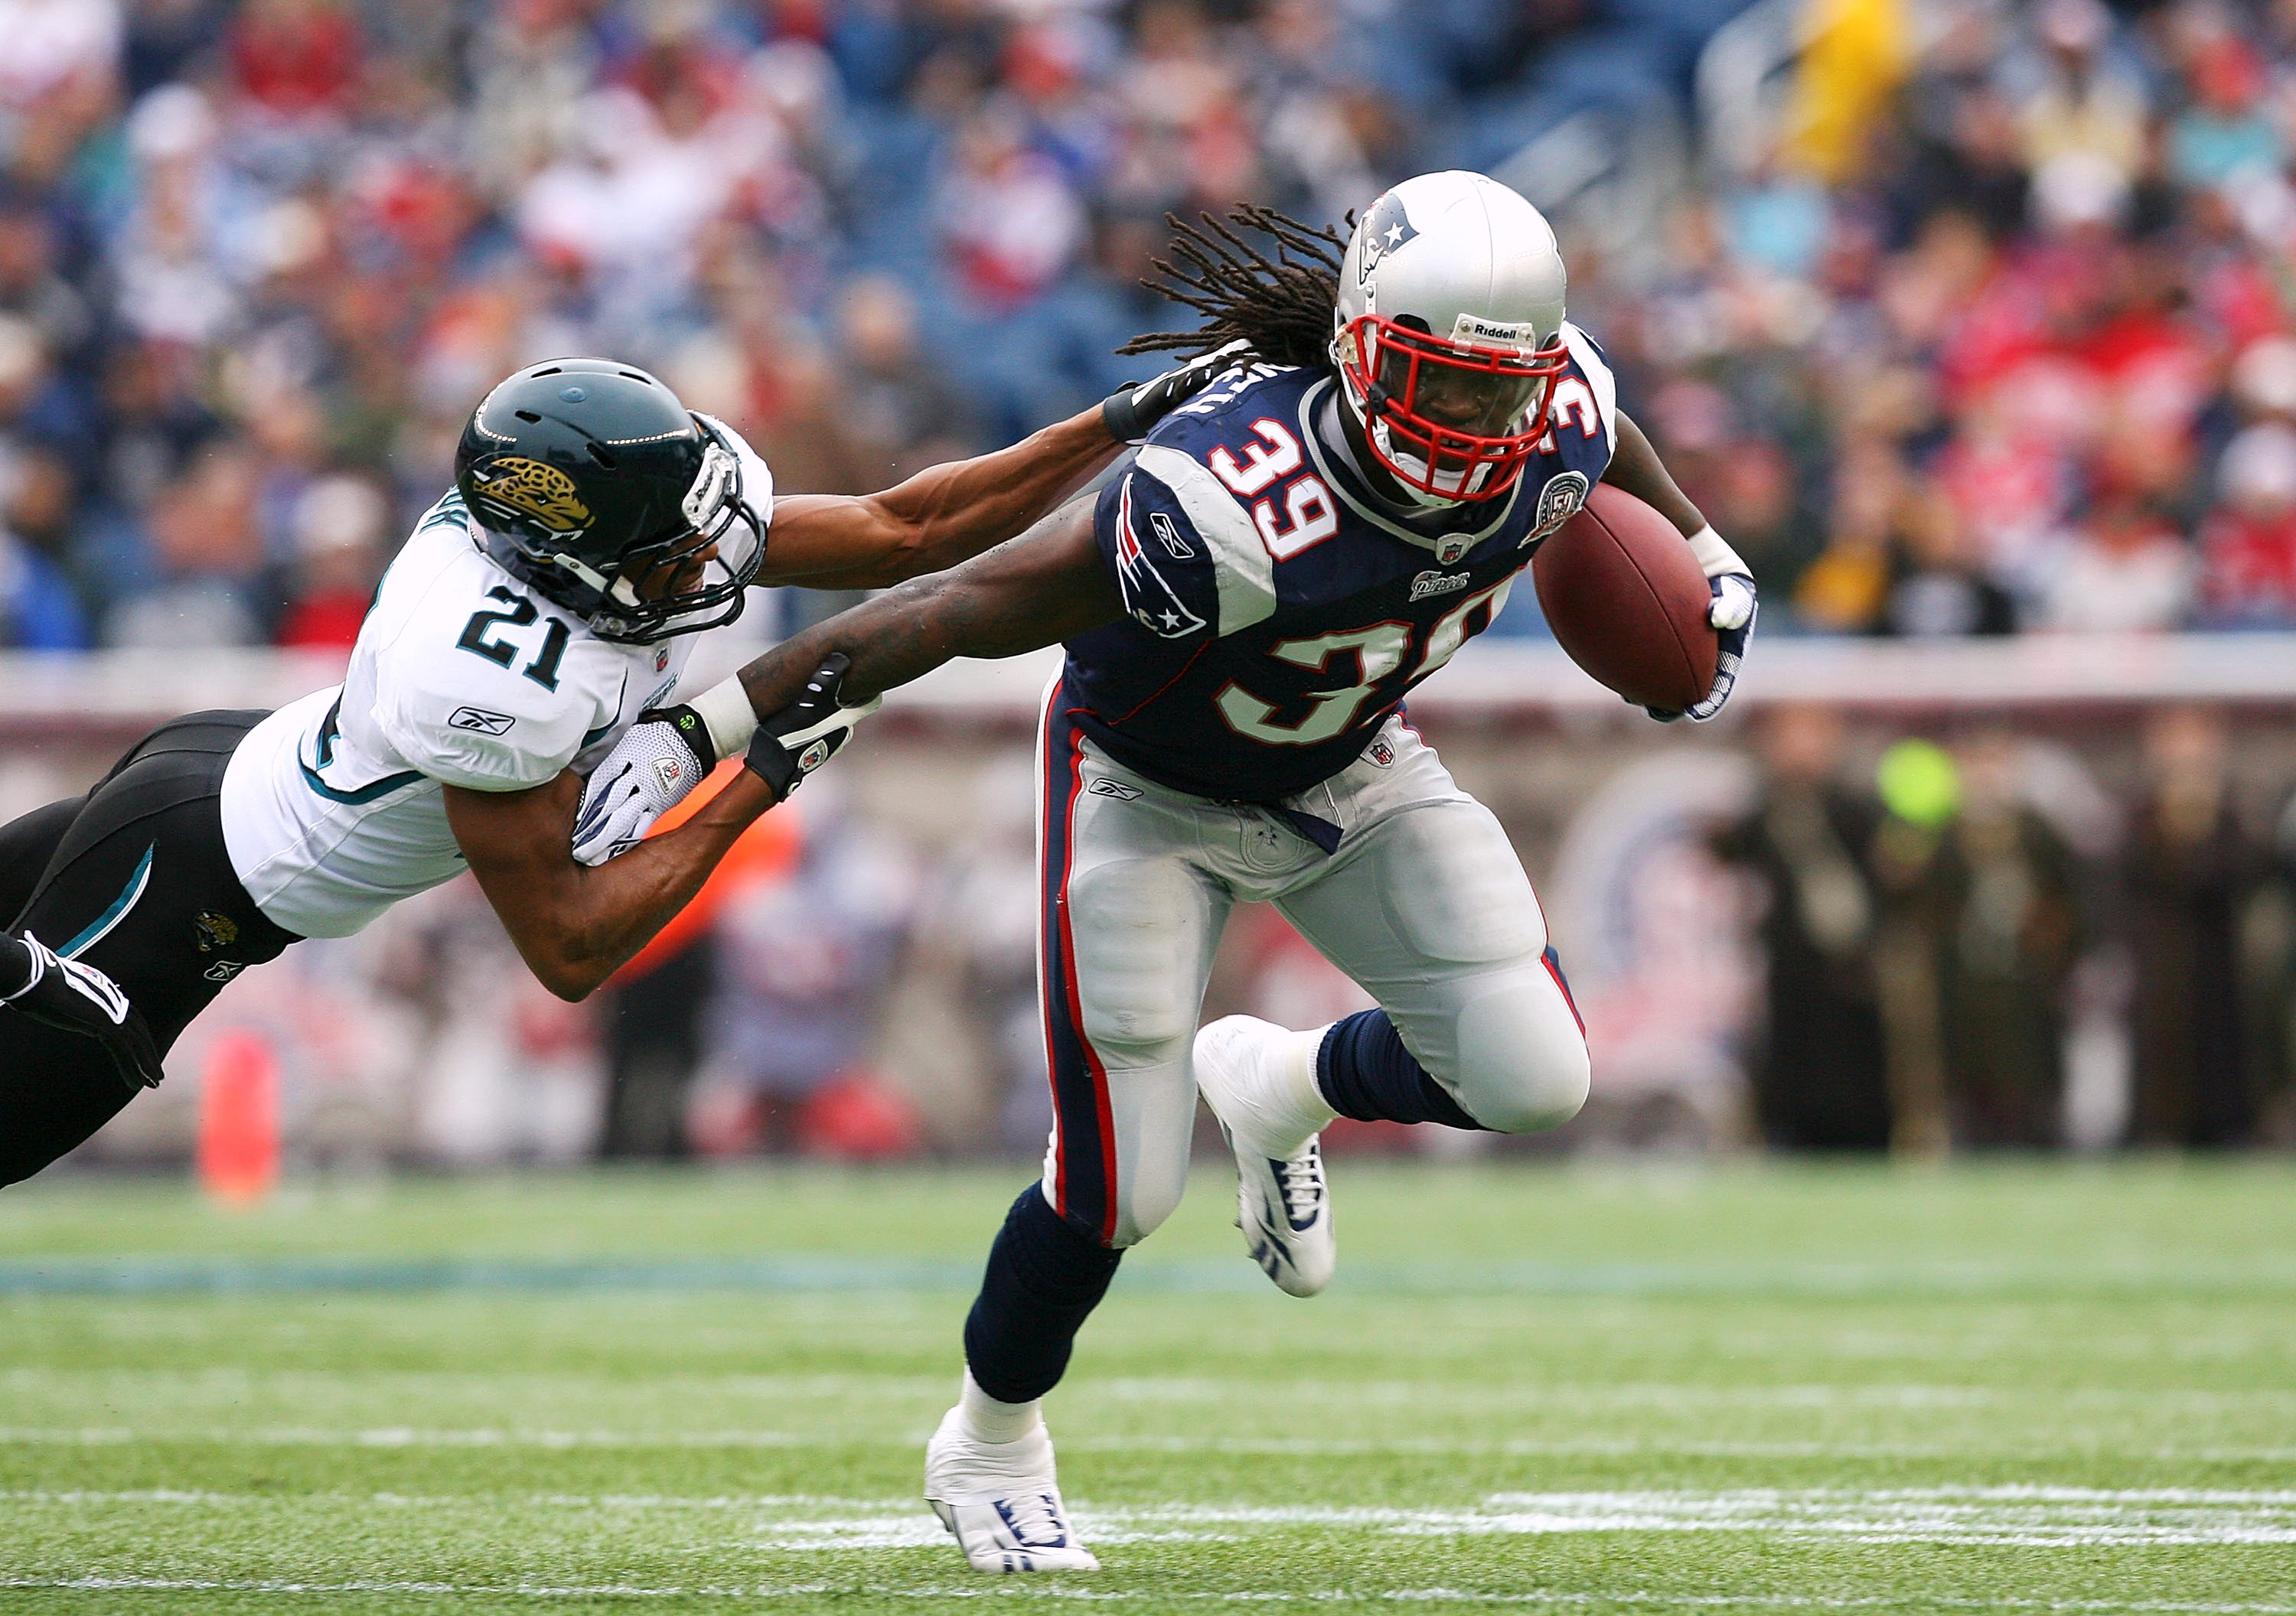 FOXBORO, MA - DECEMBER 27:  Laurence Maroney #39 of the New England Patriots gains yards against Derek Cox #21 of the Jacksonville Jaguars in the first quarter at Gillette Stadium on December 27, 2009 in Foxboro, Massachusetts. (Photo by Jim Rogash/Getty